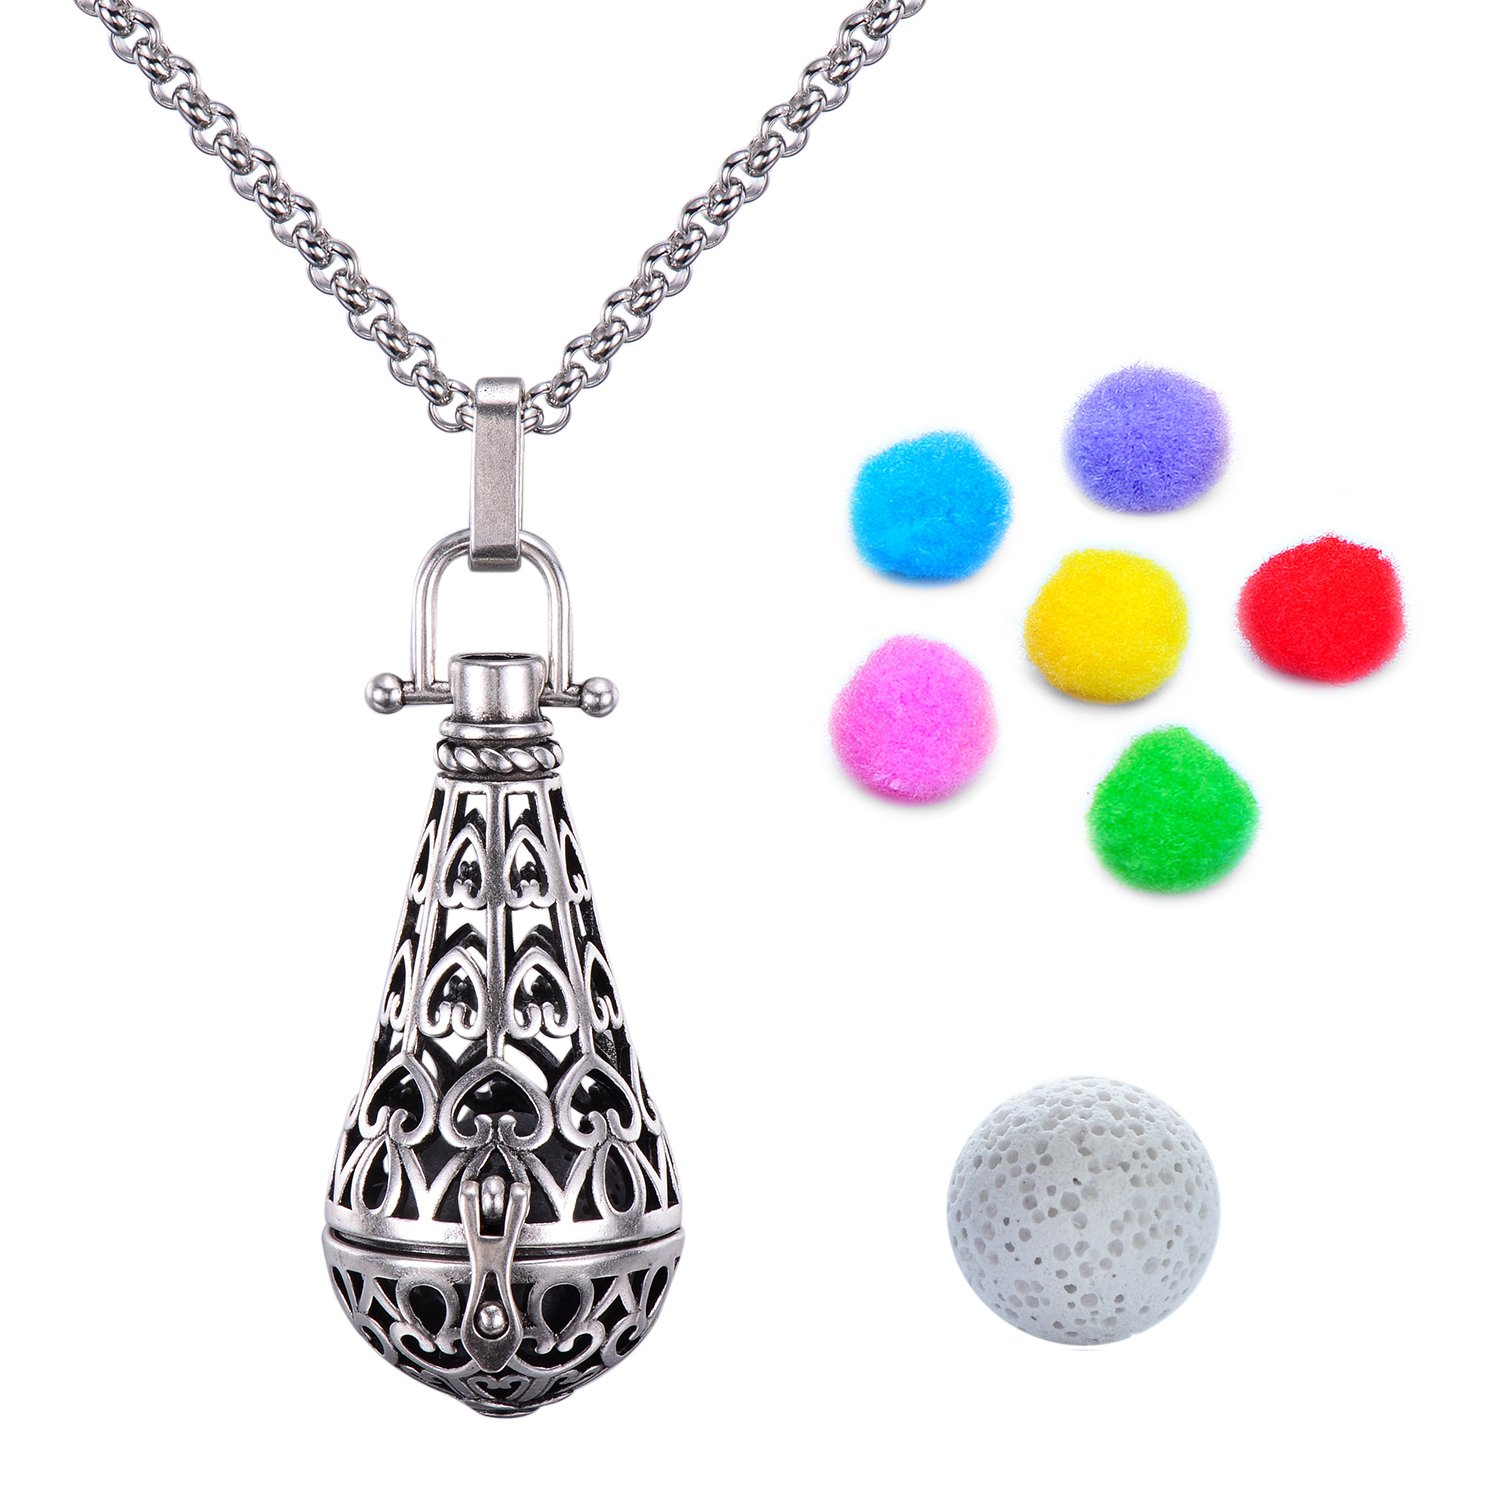 Candyfancy Antique Silver-Tone Locket Pendant Aromatherapy Essential Oil Diffuser Necklace 30'' Stainless Steel Chain (Teardrop Locket Pendant)